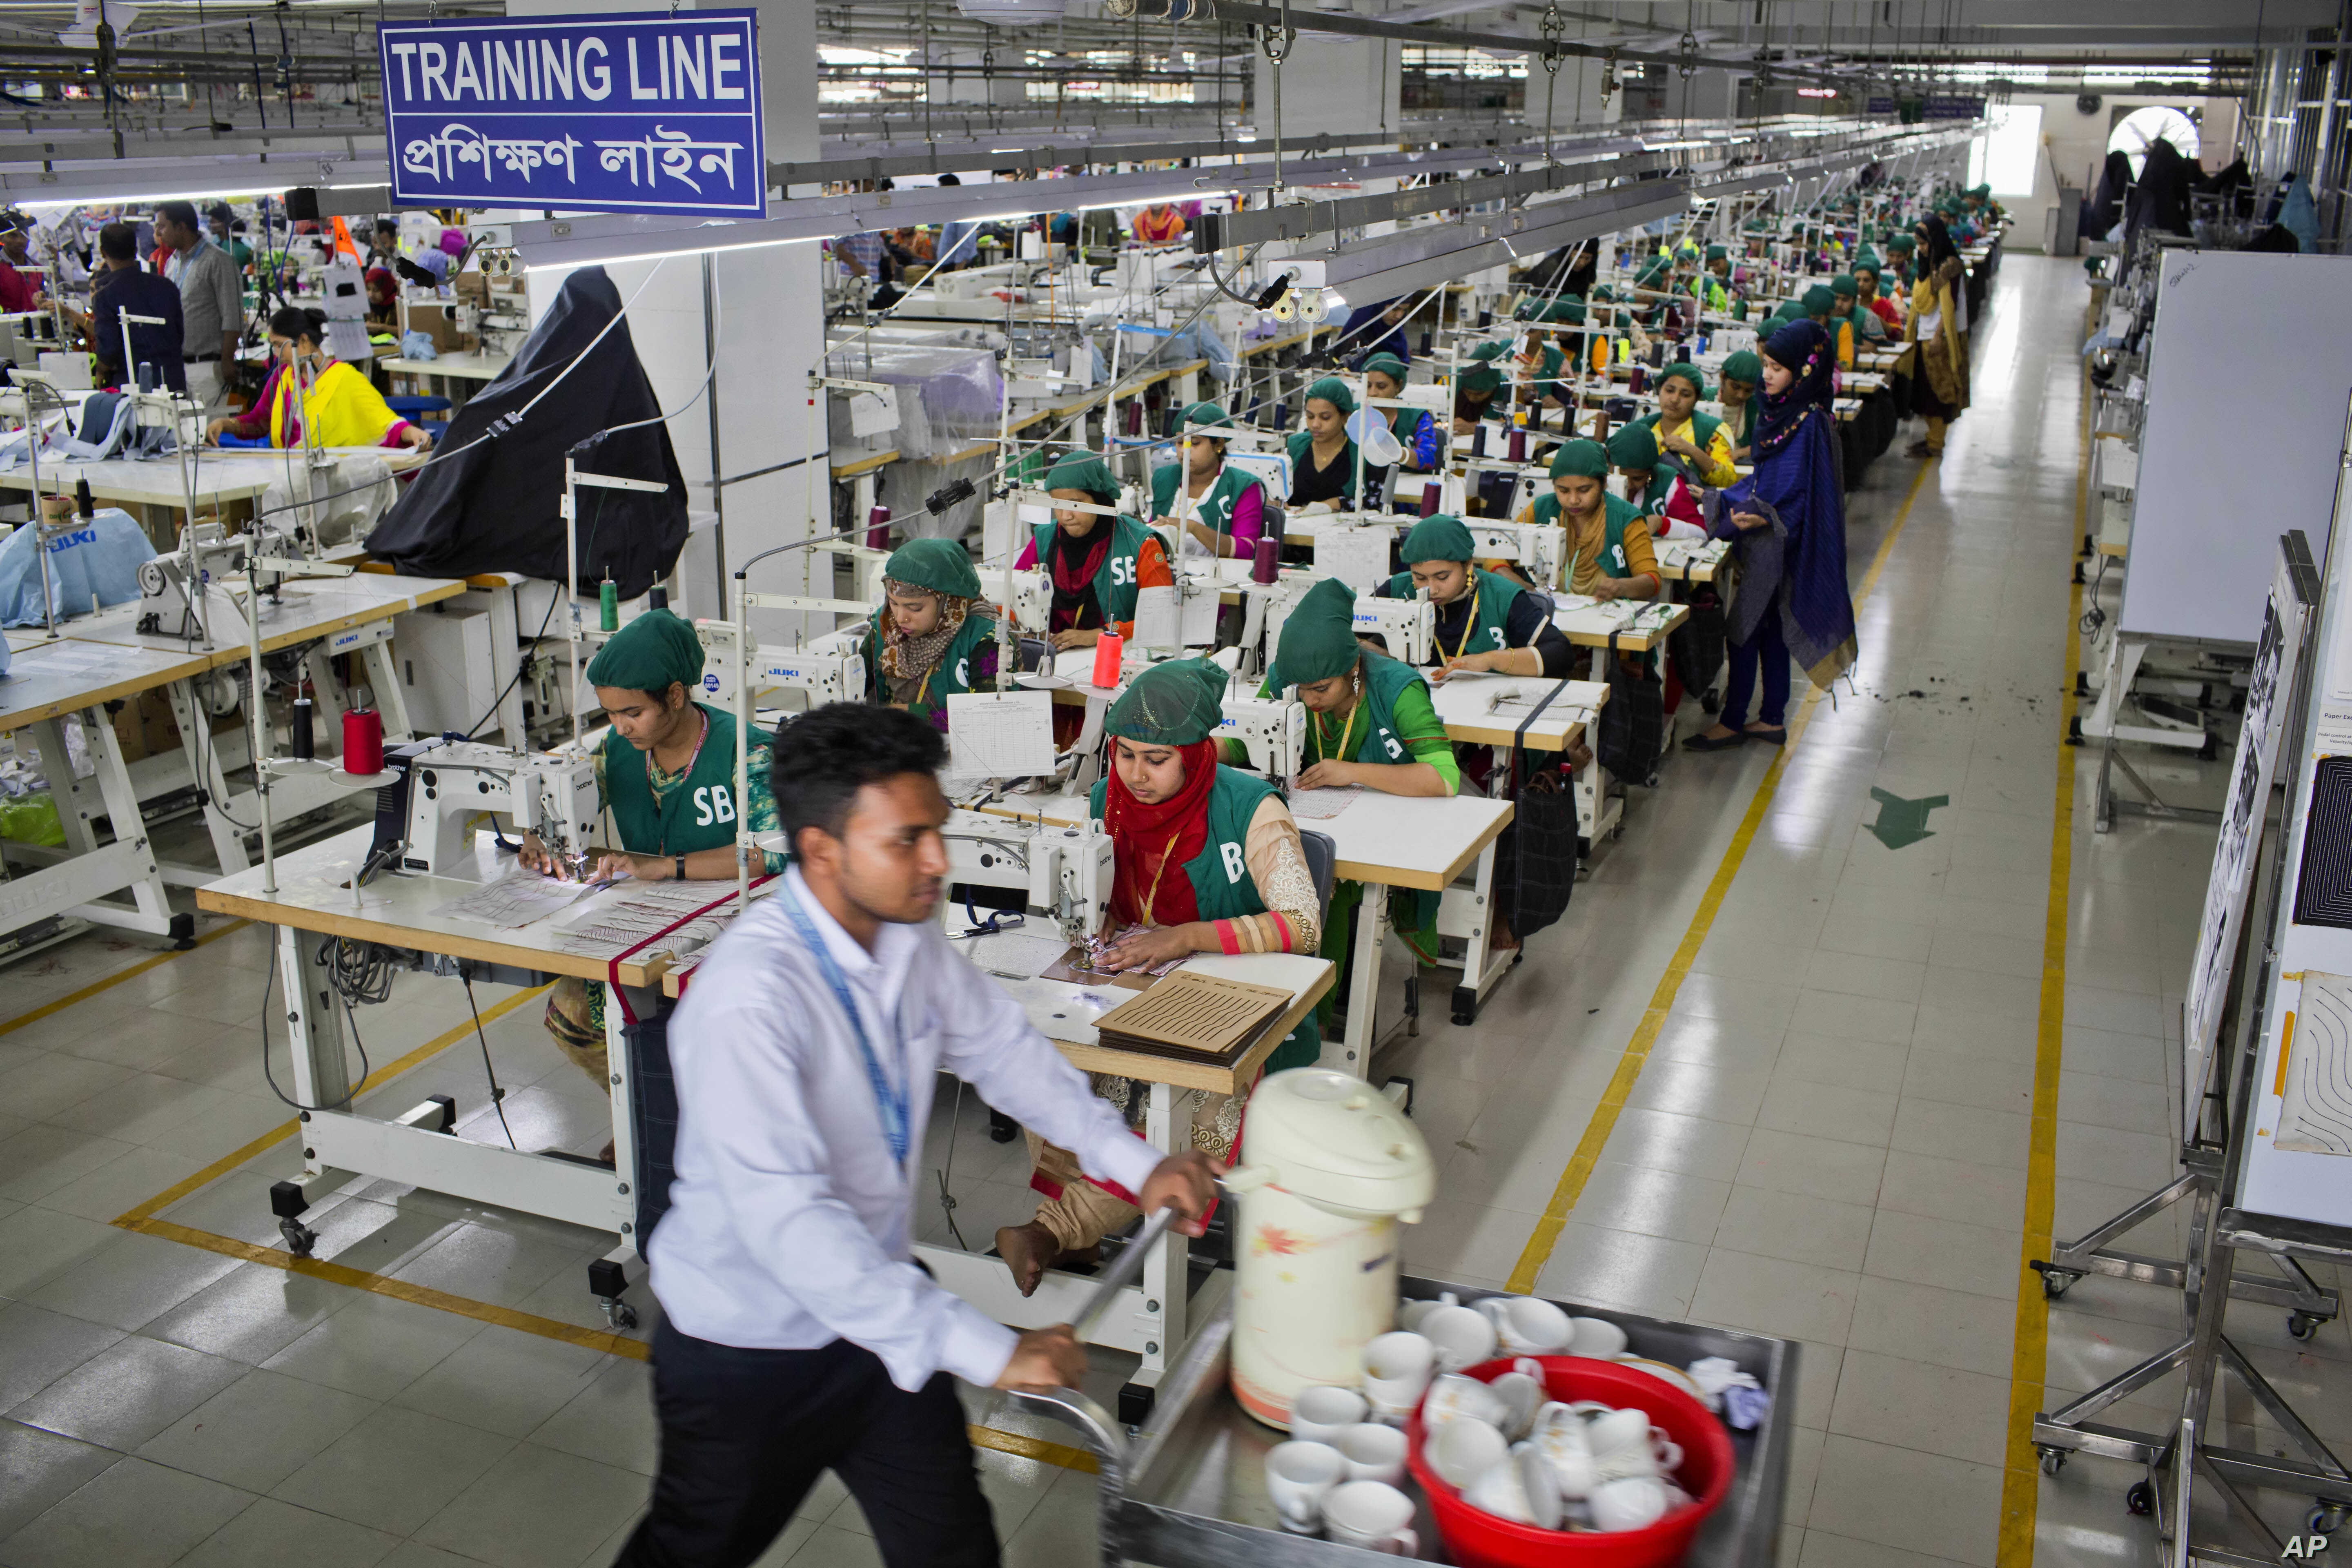 Complaints About Safety in Bangladesh Factories Hit High in